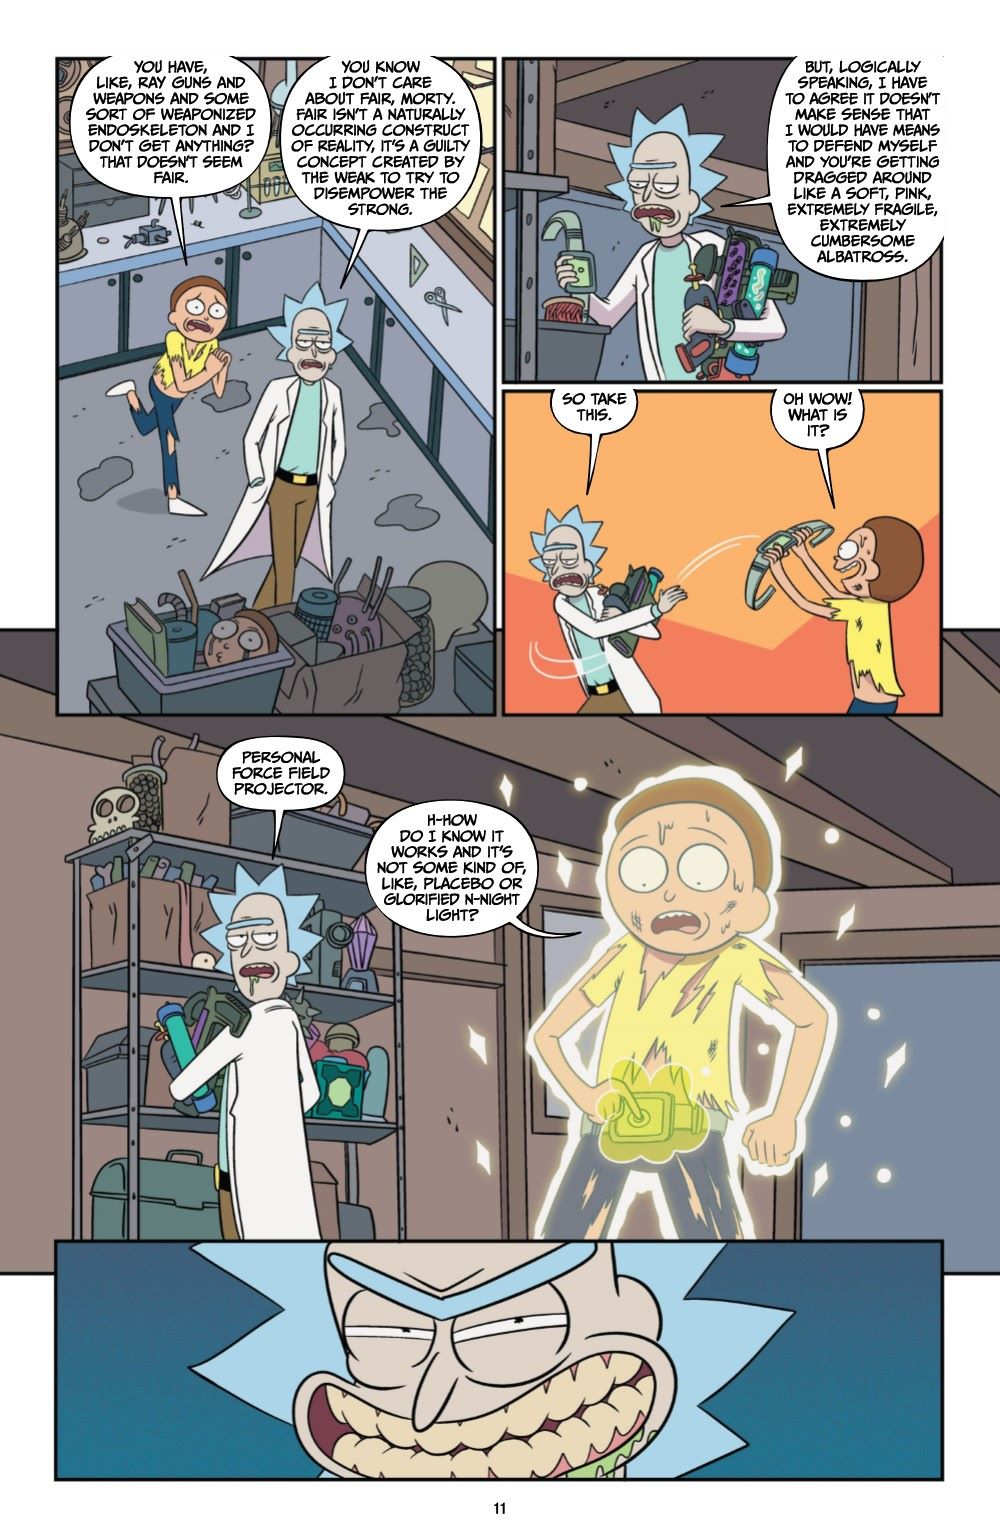 RICKMORTY-V12-TPB-REFERENCE-012 ComicList Previews: RICK AND MORTY VOLUME 12 TP